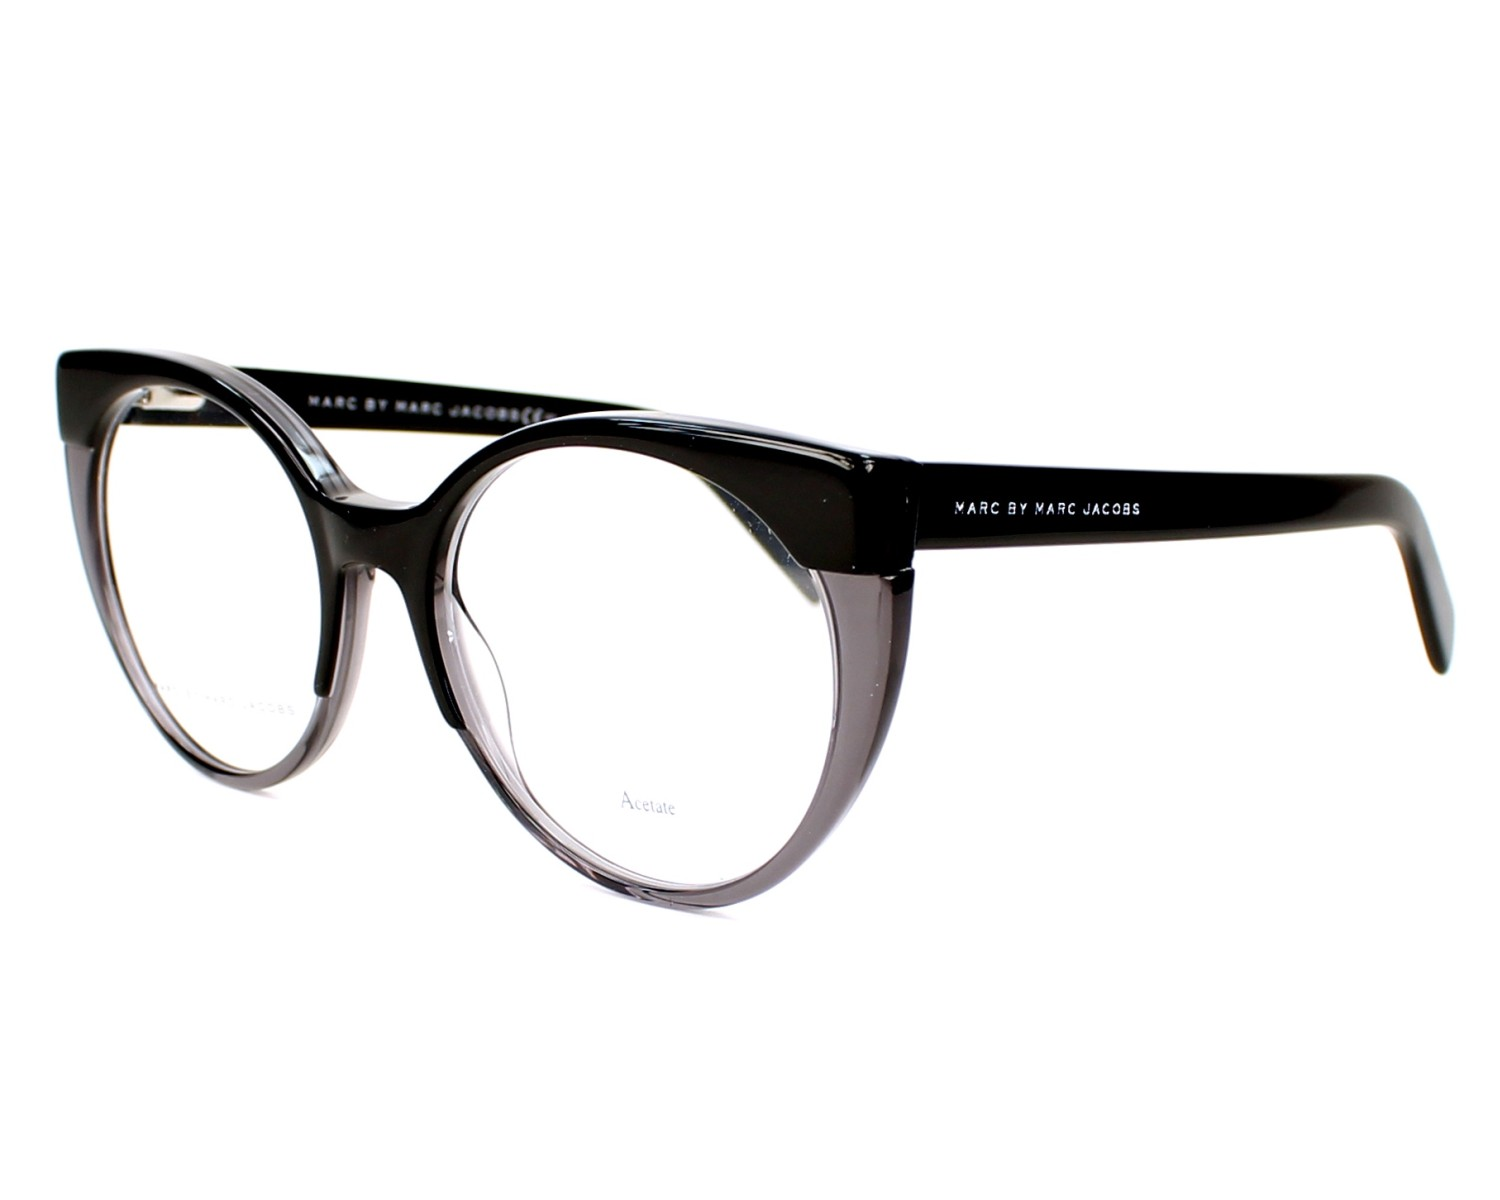 order your marc by marc eyeglasses mmj 645 j1h 53 today